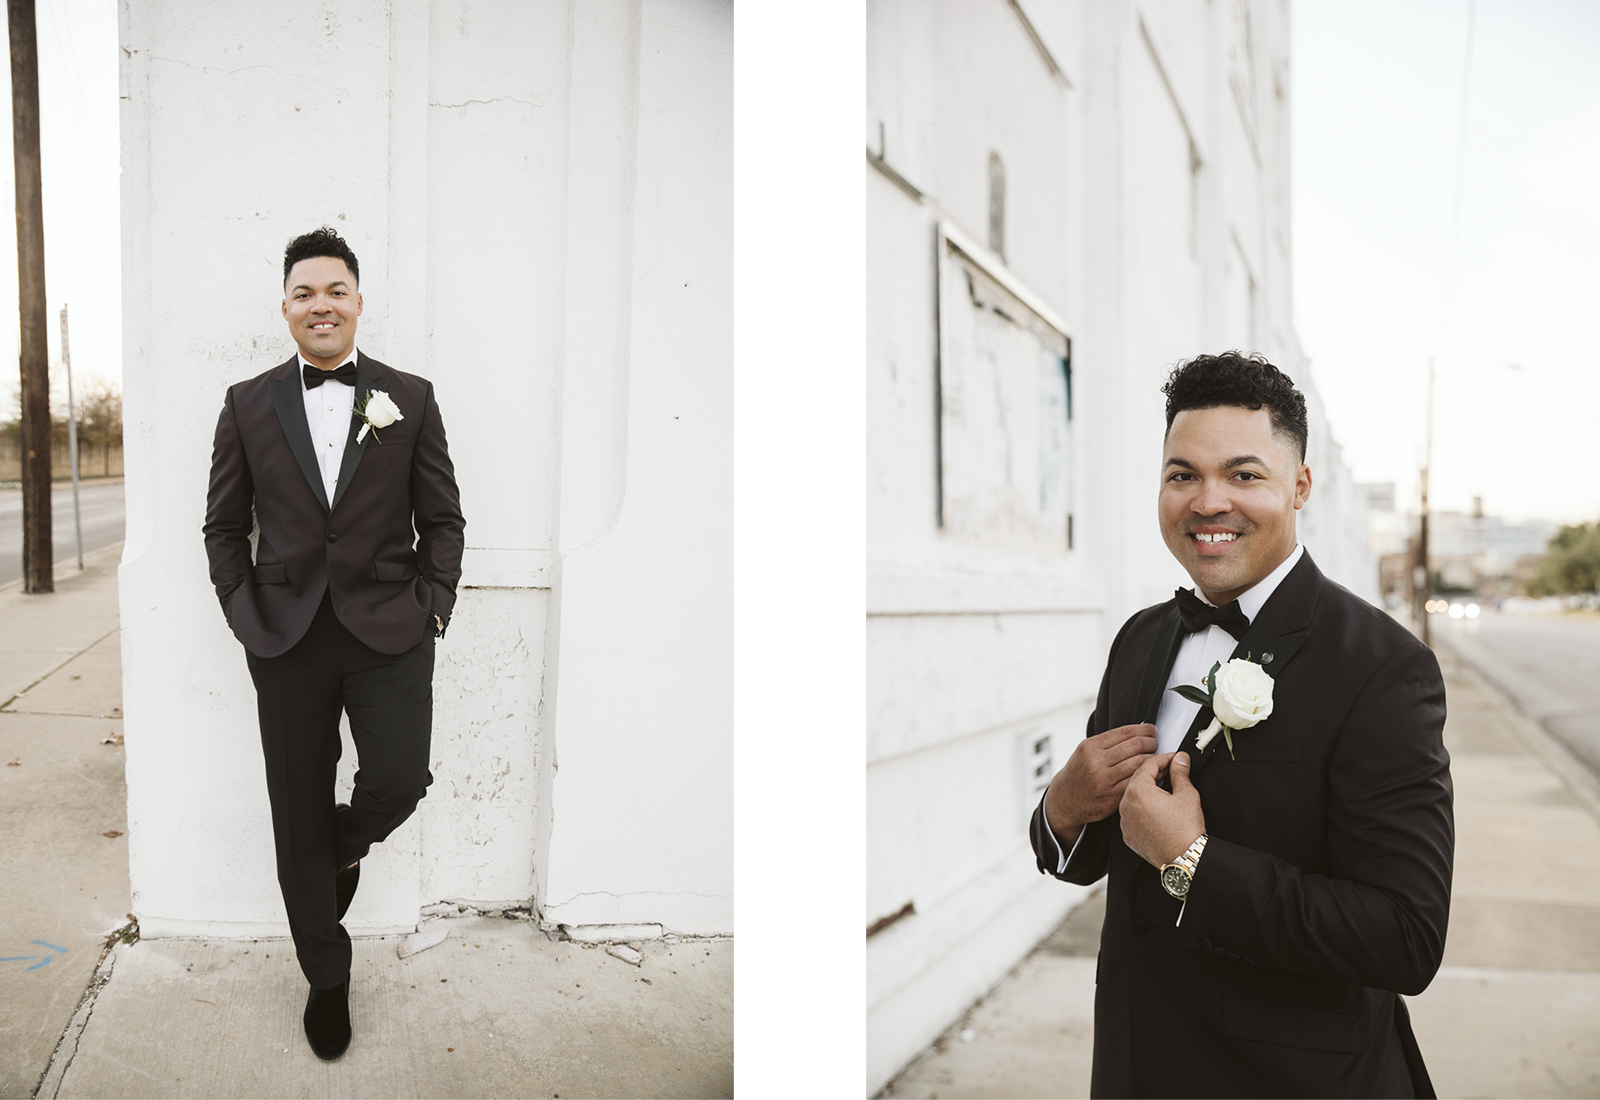 Groom portrait, destination wedding photographer Barcelona | Natalia Wisniewska Photography